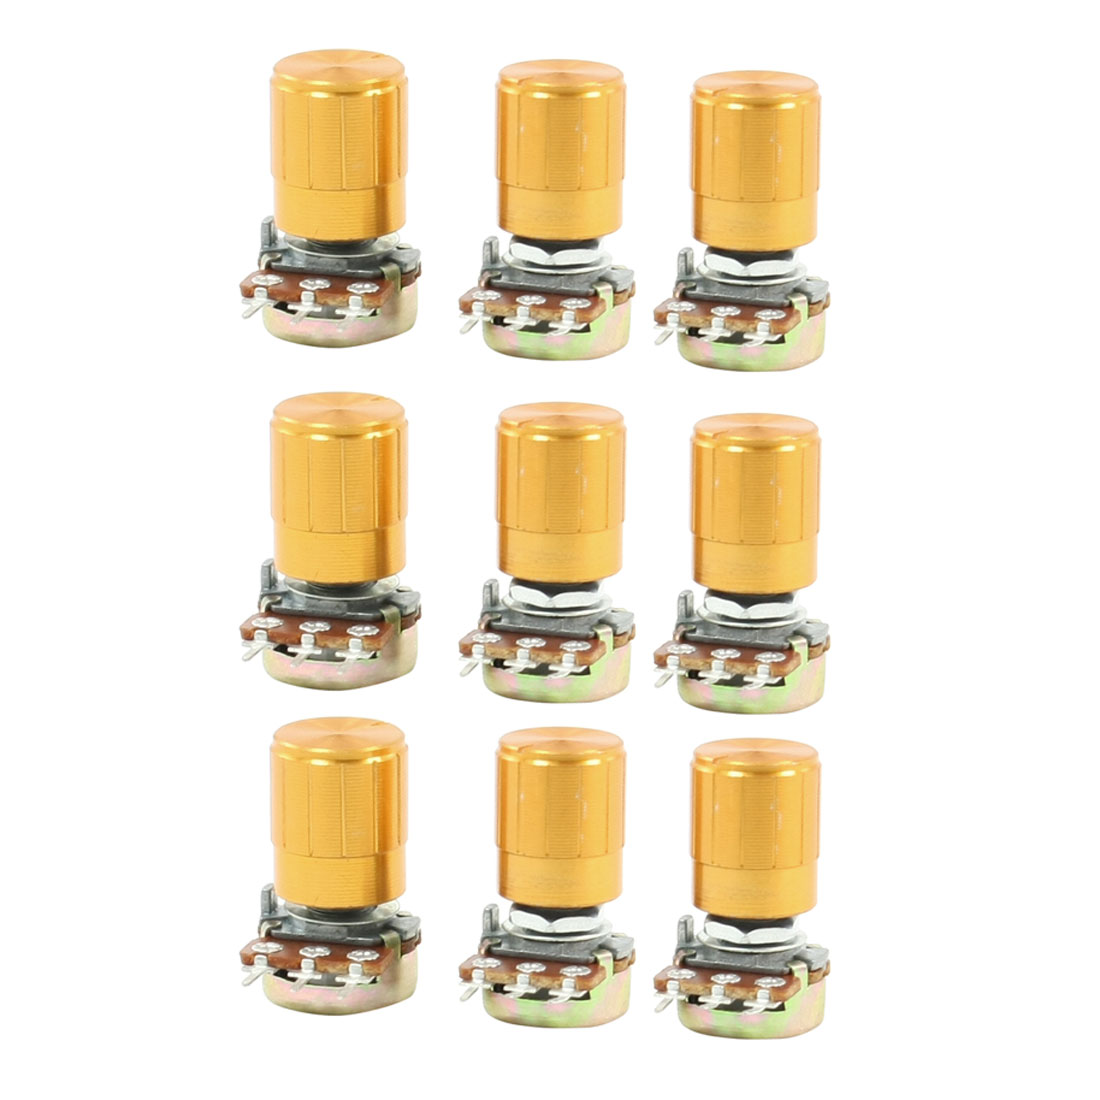 9 Pcs 50K ohm 3 Pins 6mm Split Shaft Rotary Linear Taper Potentiometers w Knob